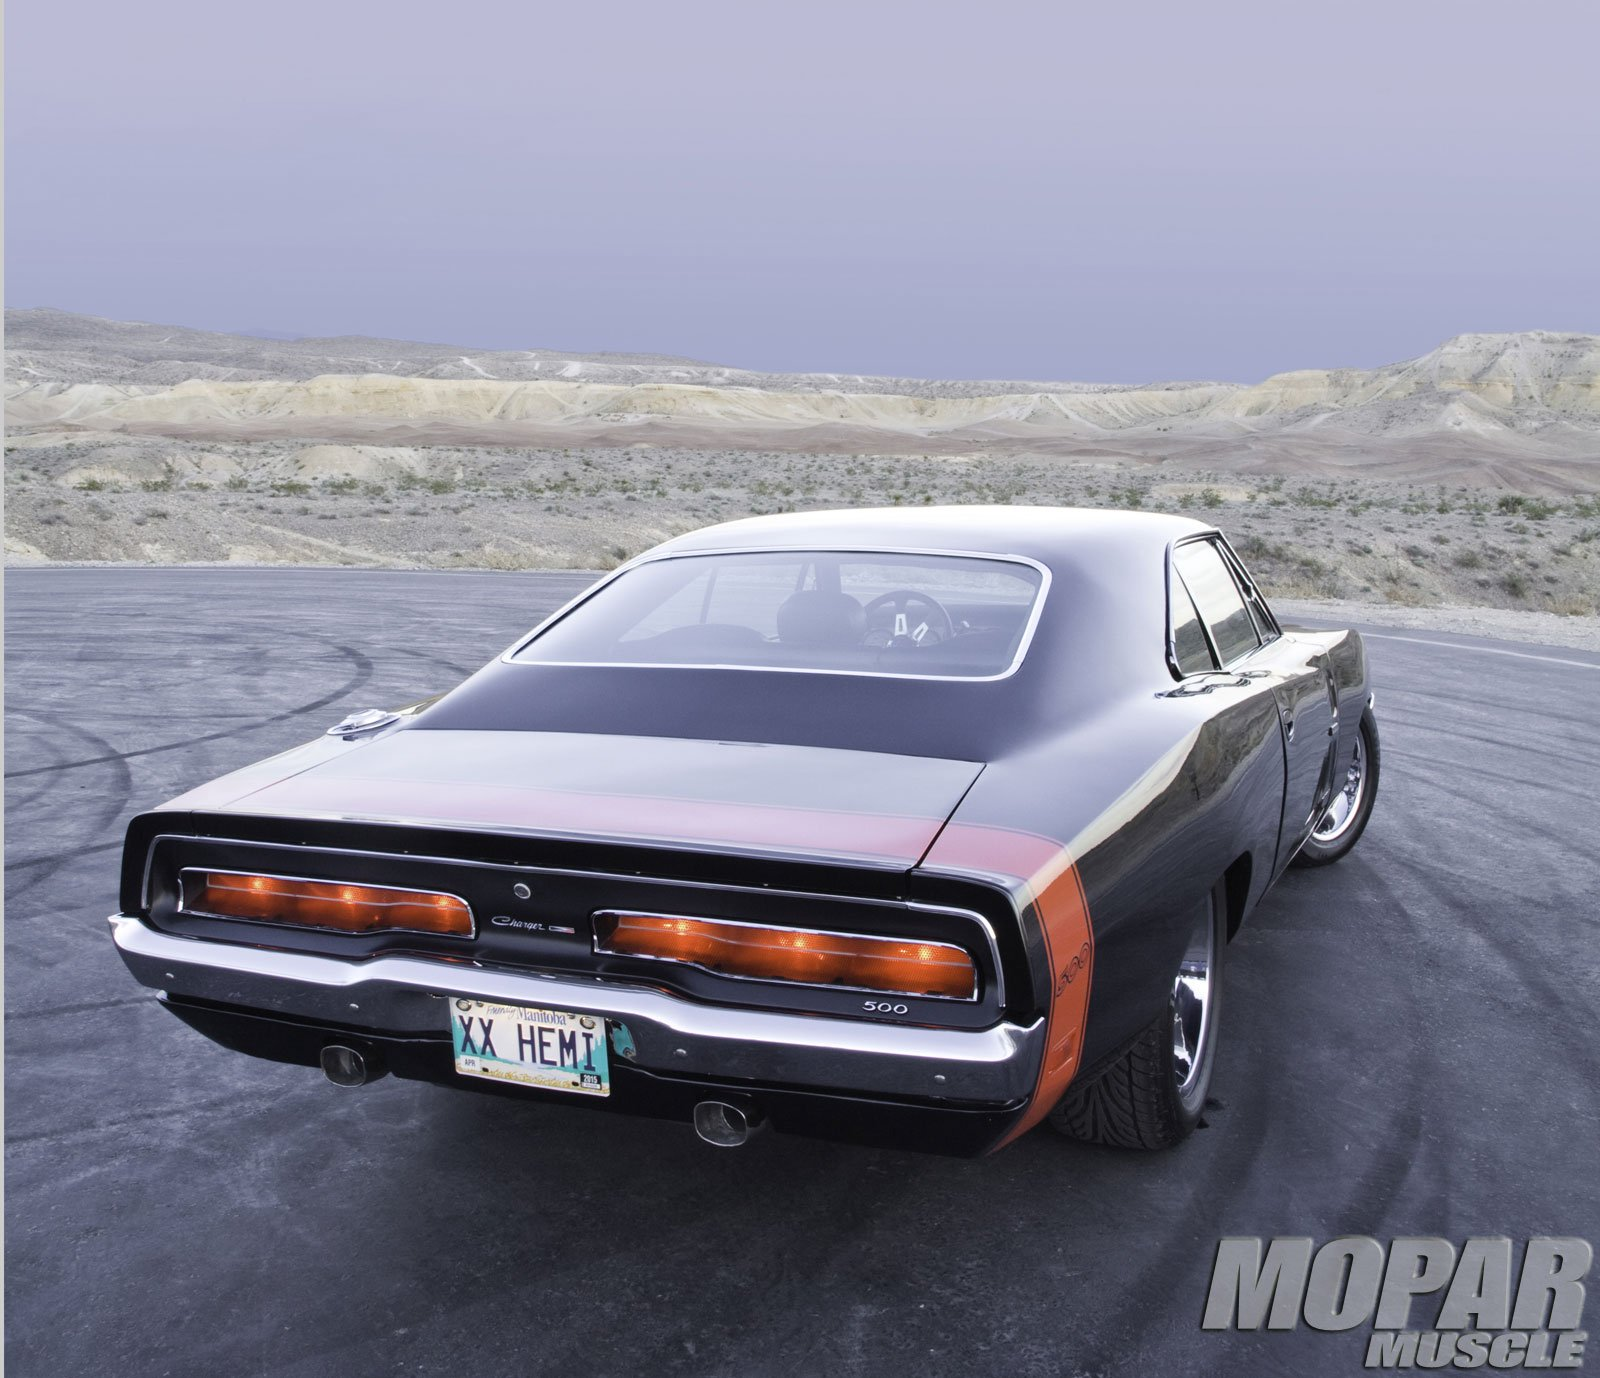 Classic Muscle Car Wallpapers: 1969 Cars Charger Classic Dodge Mopar Muscle USA Wallpaper